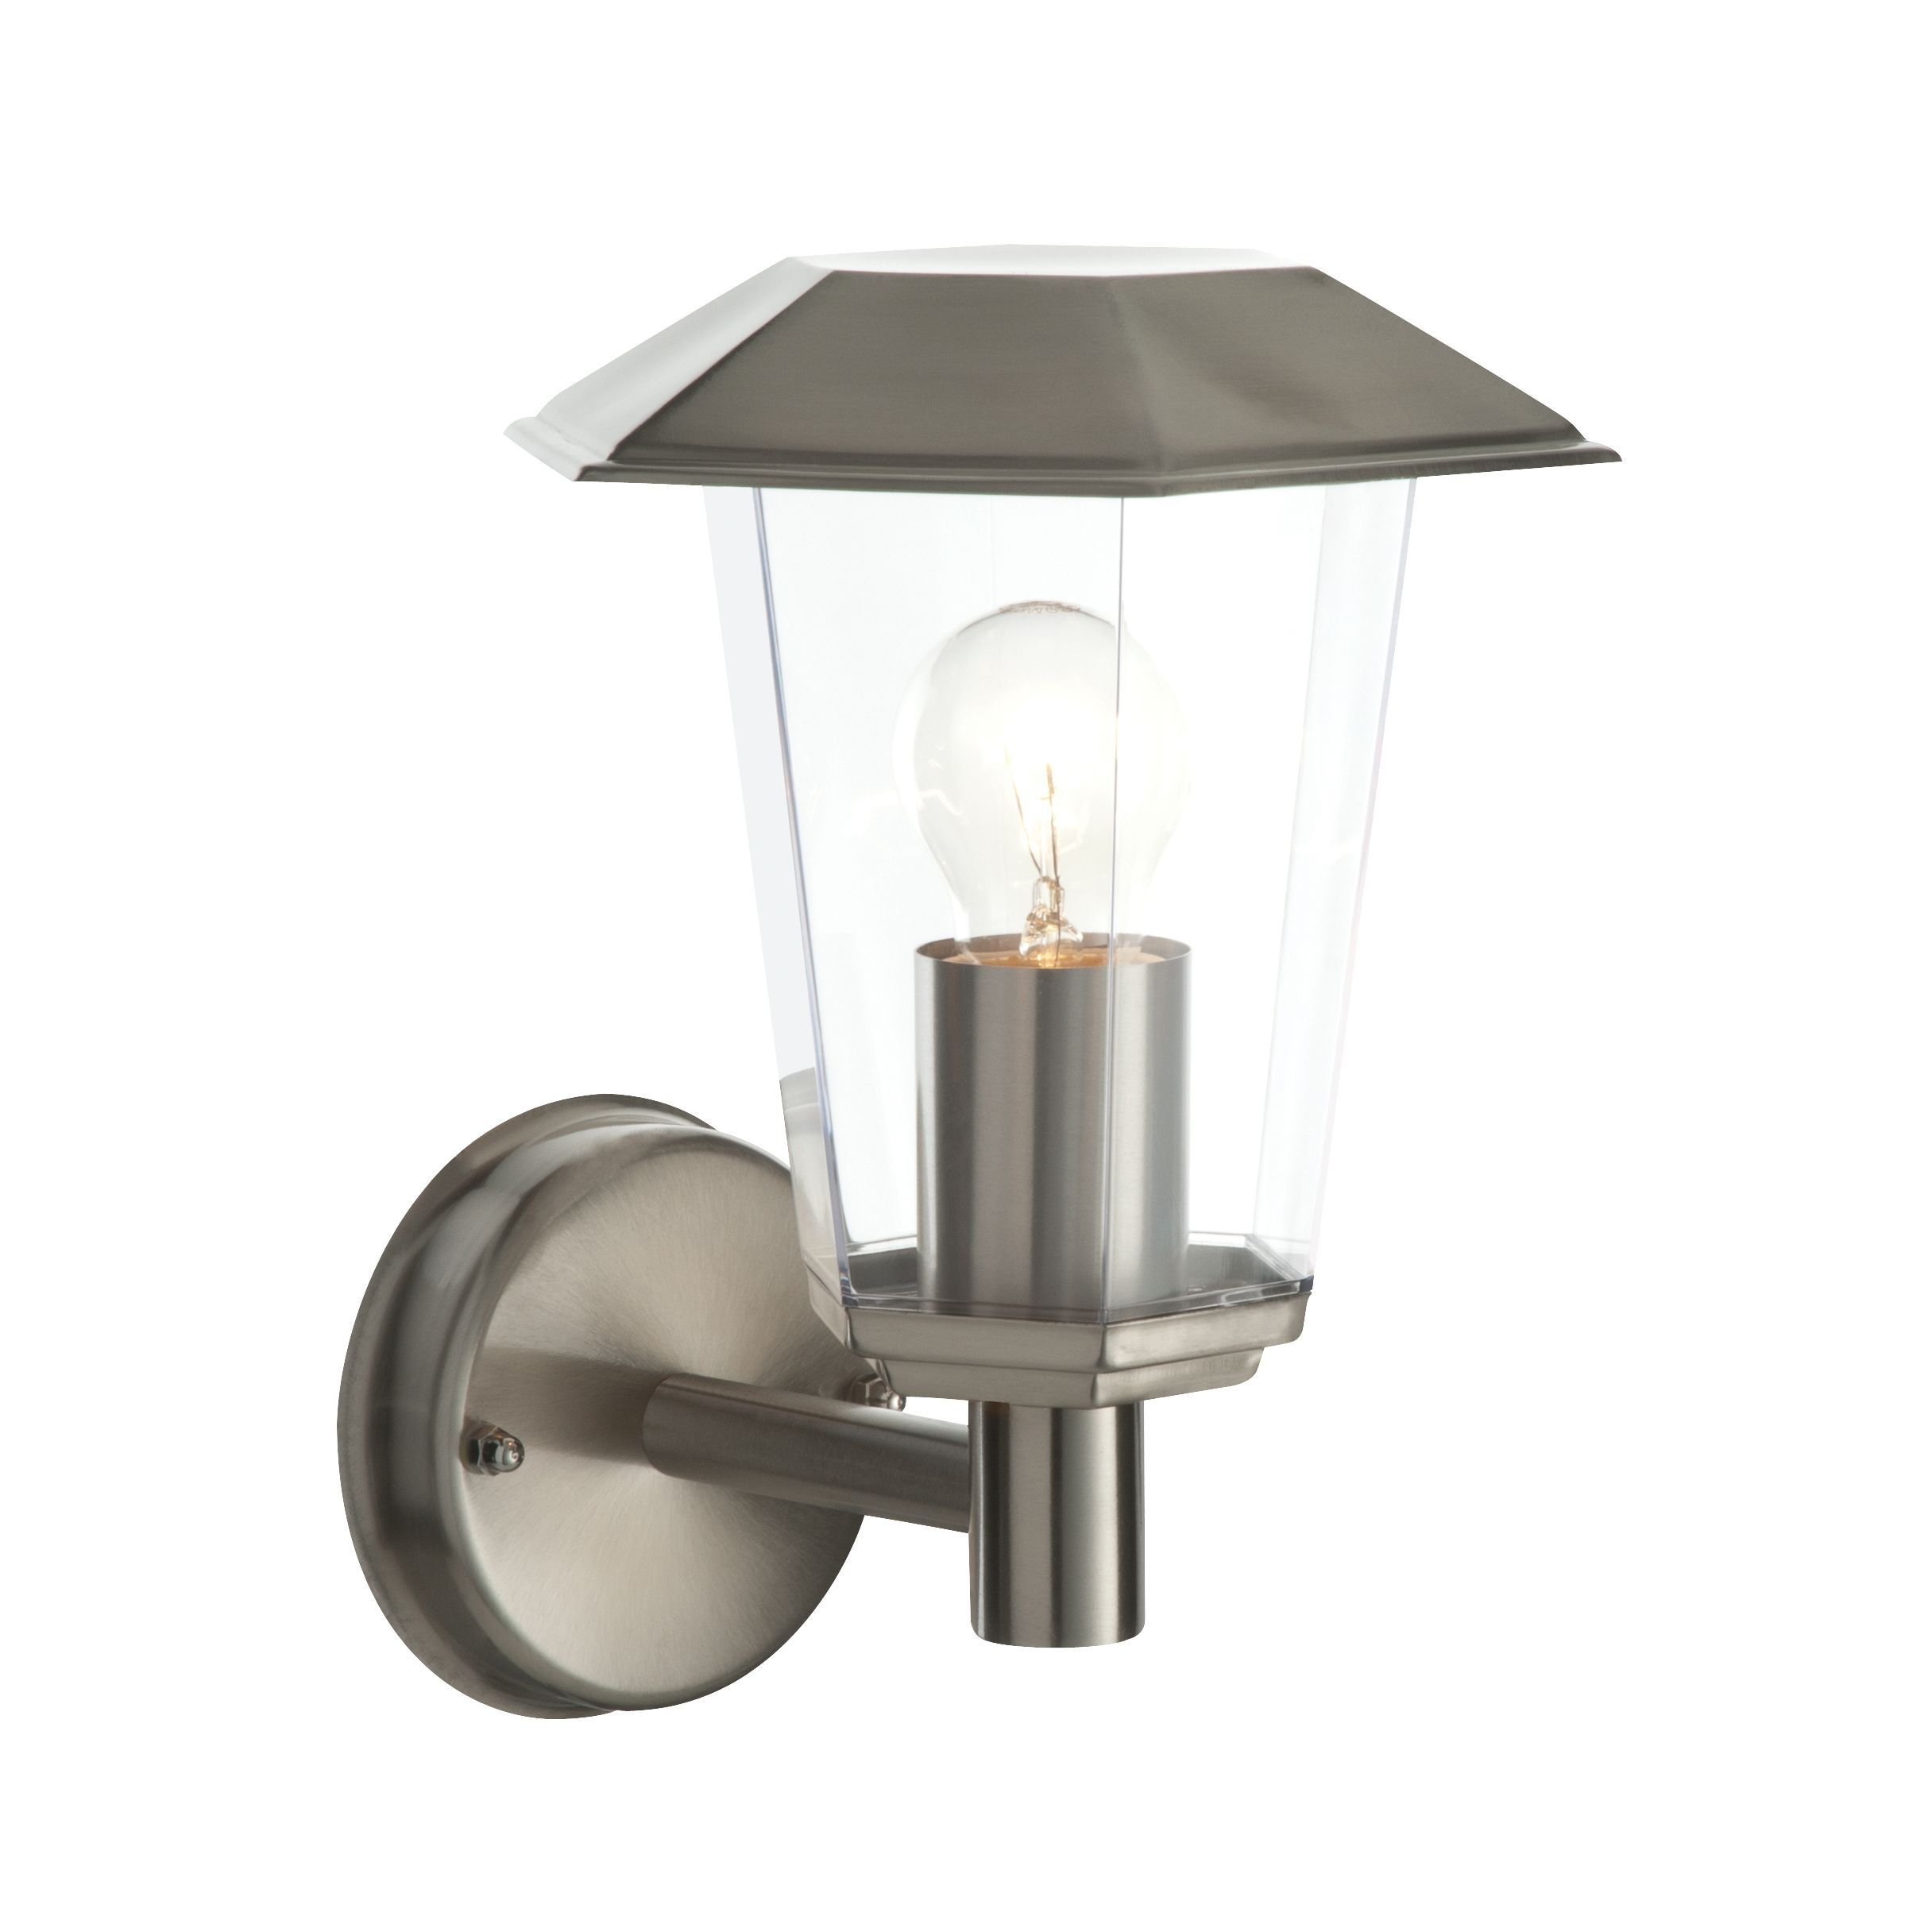 Masterlite Seaton Stainless Steel External Wall Light - B&Q for all your  home and garden supplies and advice on all the latest DIY trends